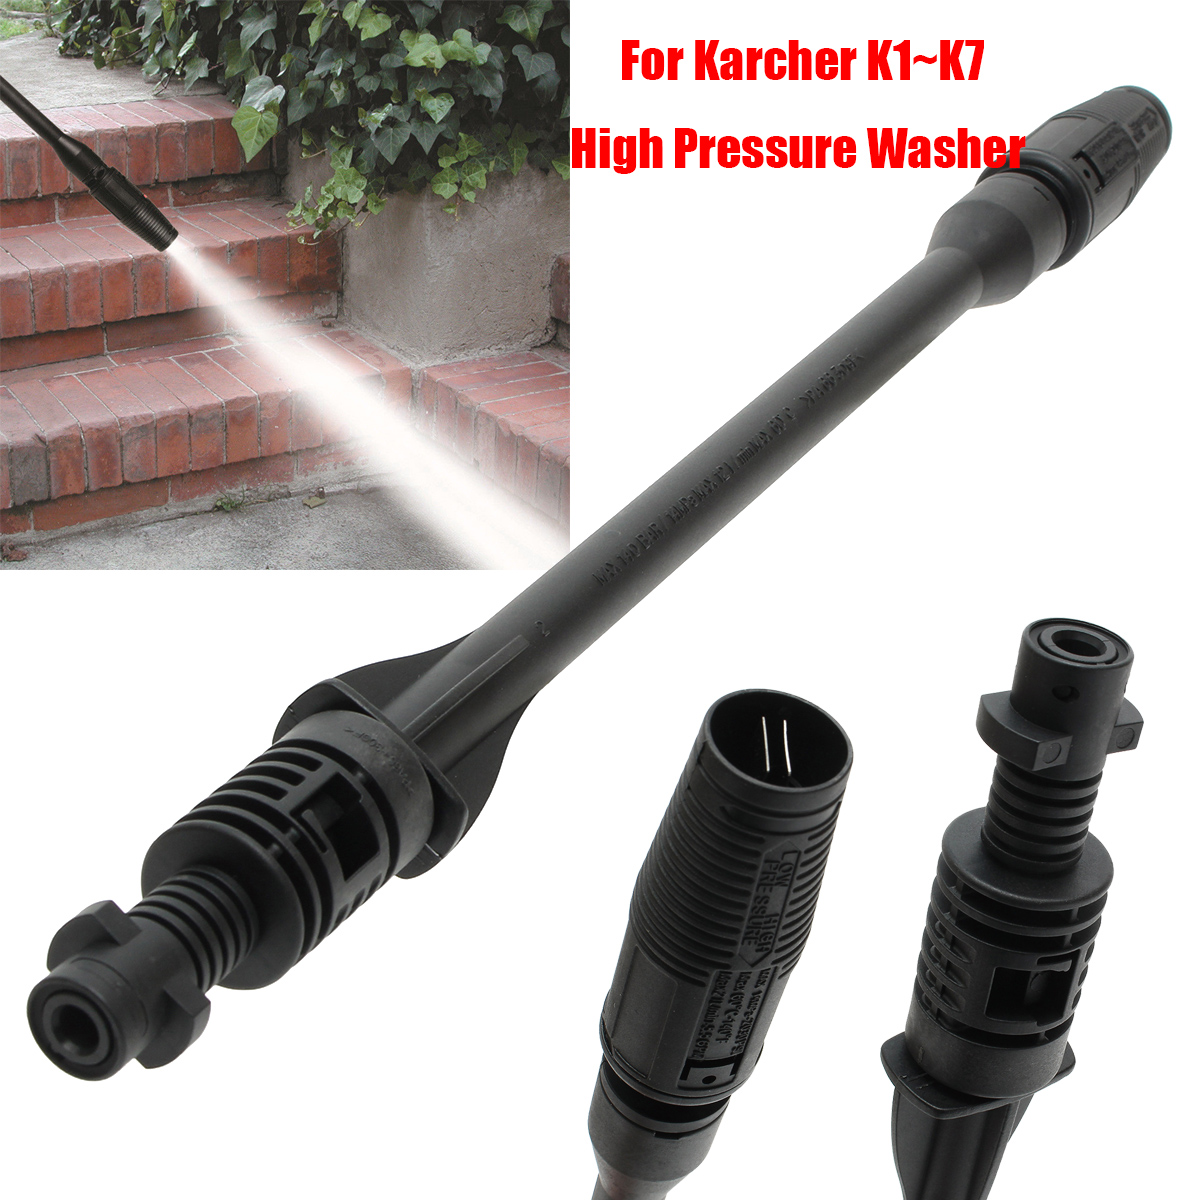 Car Washer Jet Lance Nozzle for Karcher K1 K2 K3 K4 K5 K6 K7 High Pressure Wash